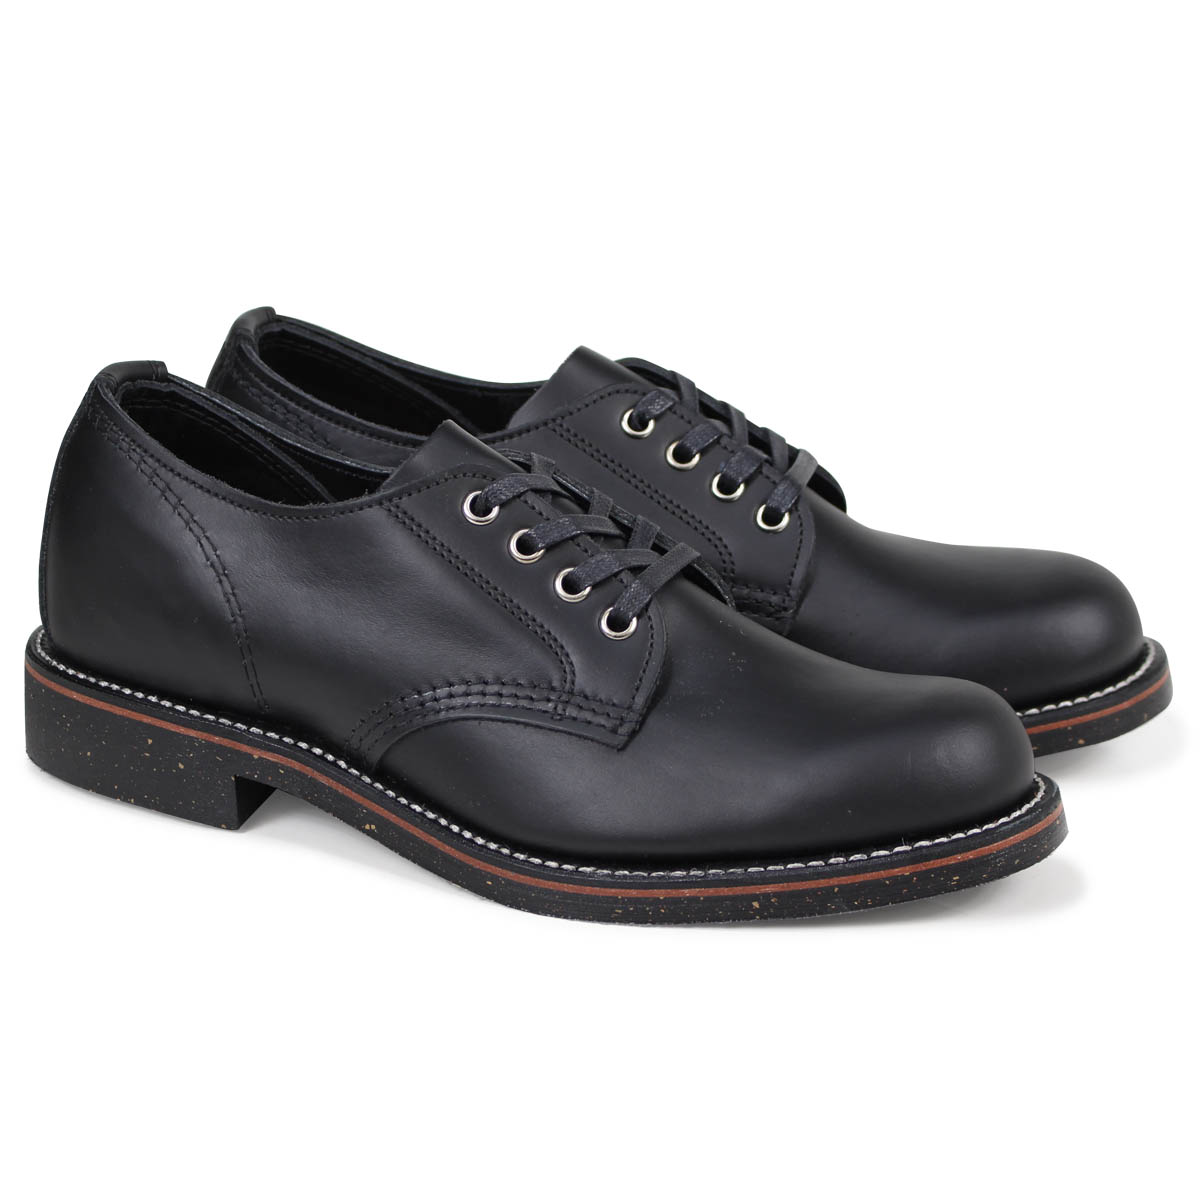 Whats Up Sports Sold Out Chippewa 4 Inch Service